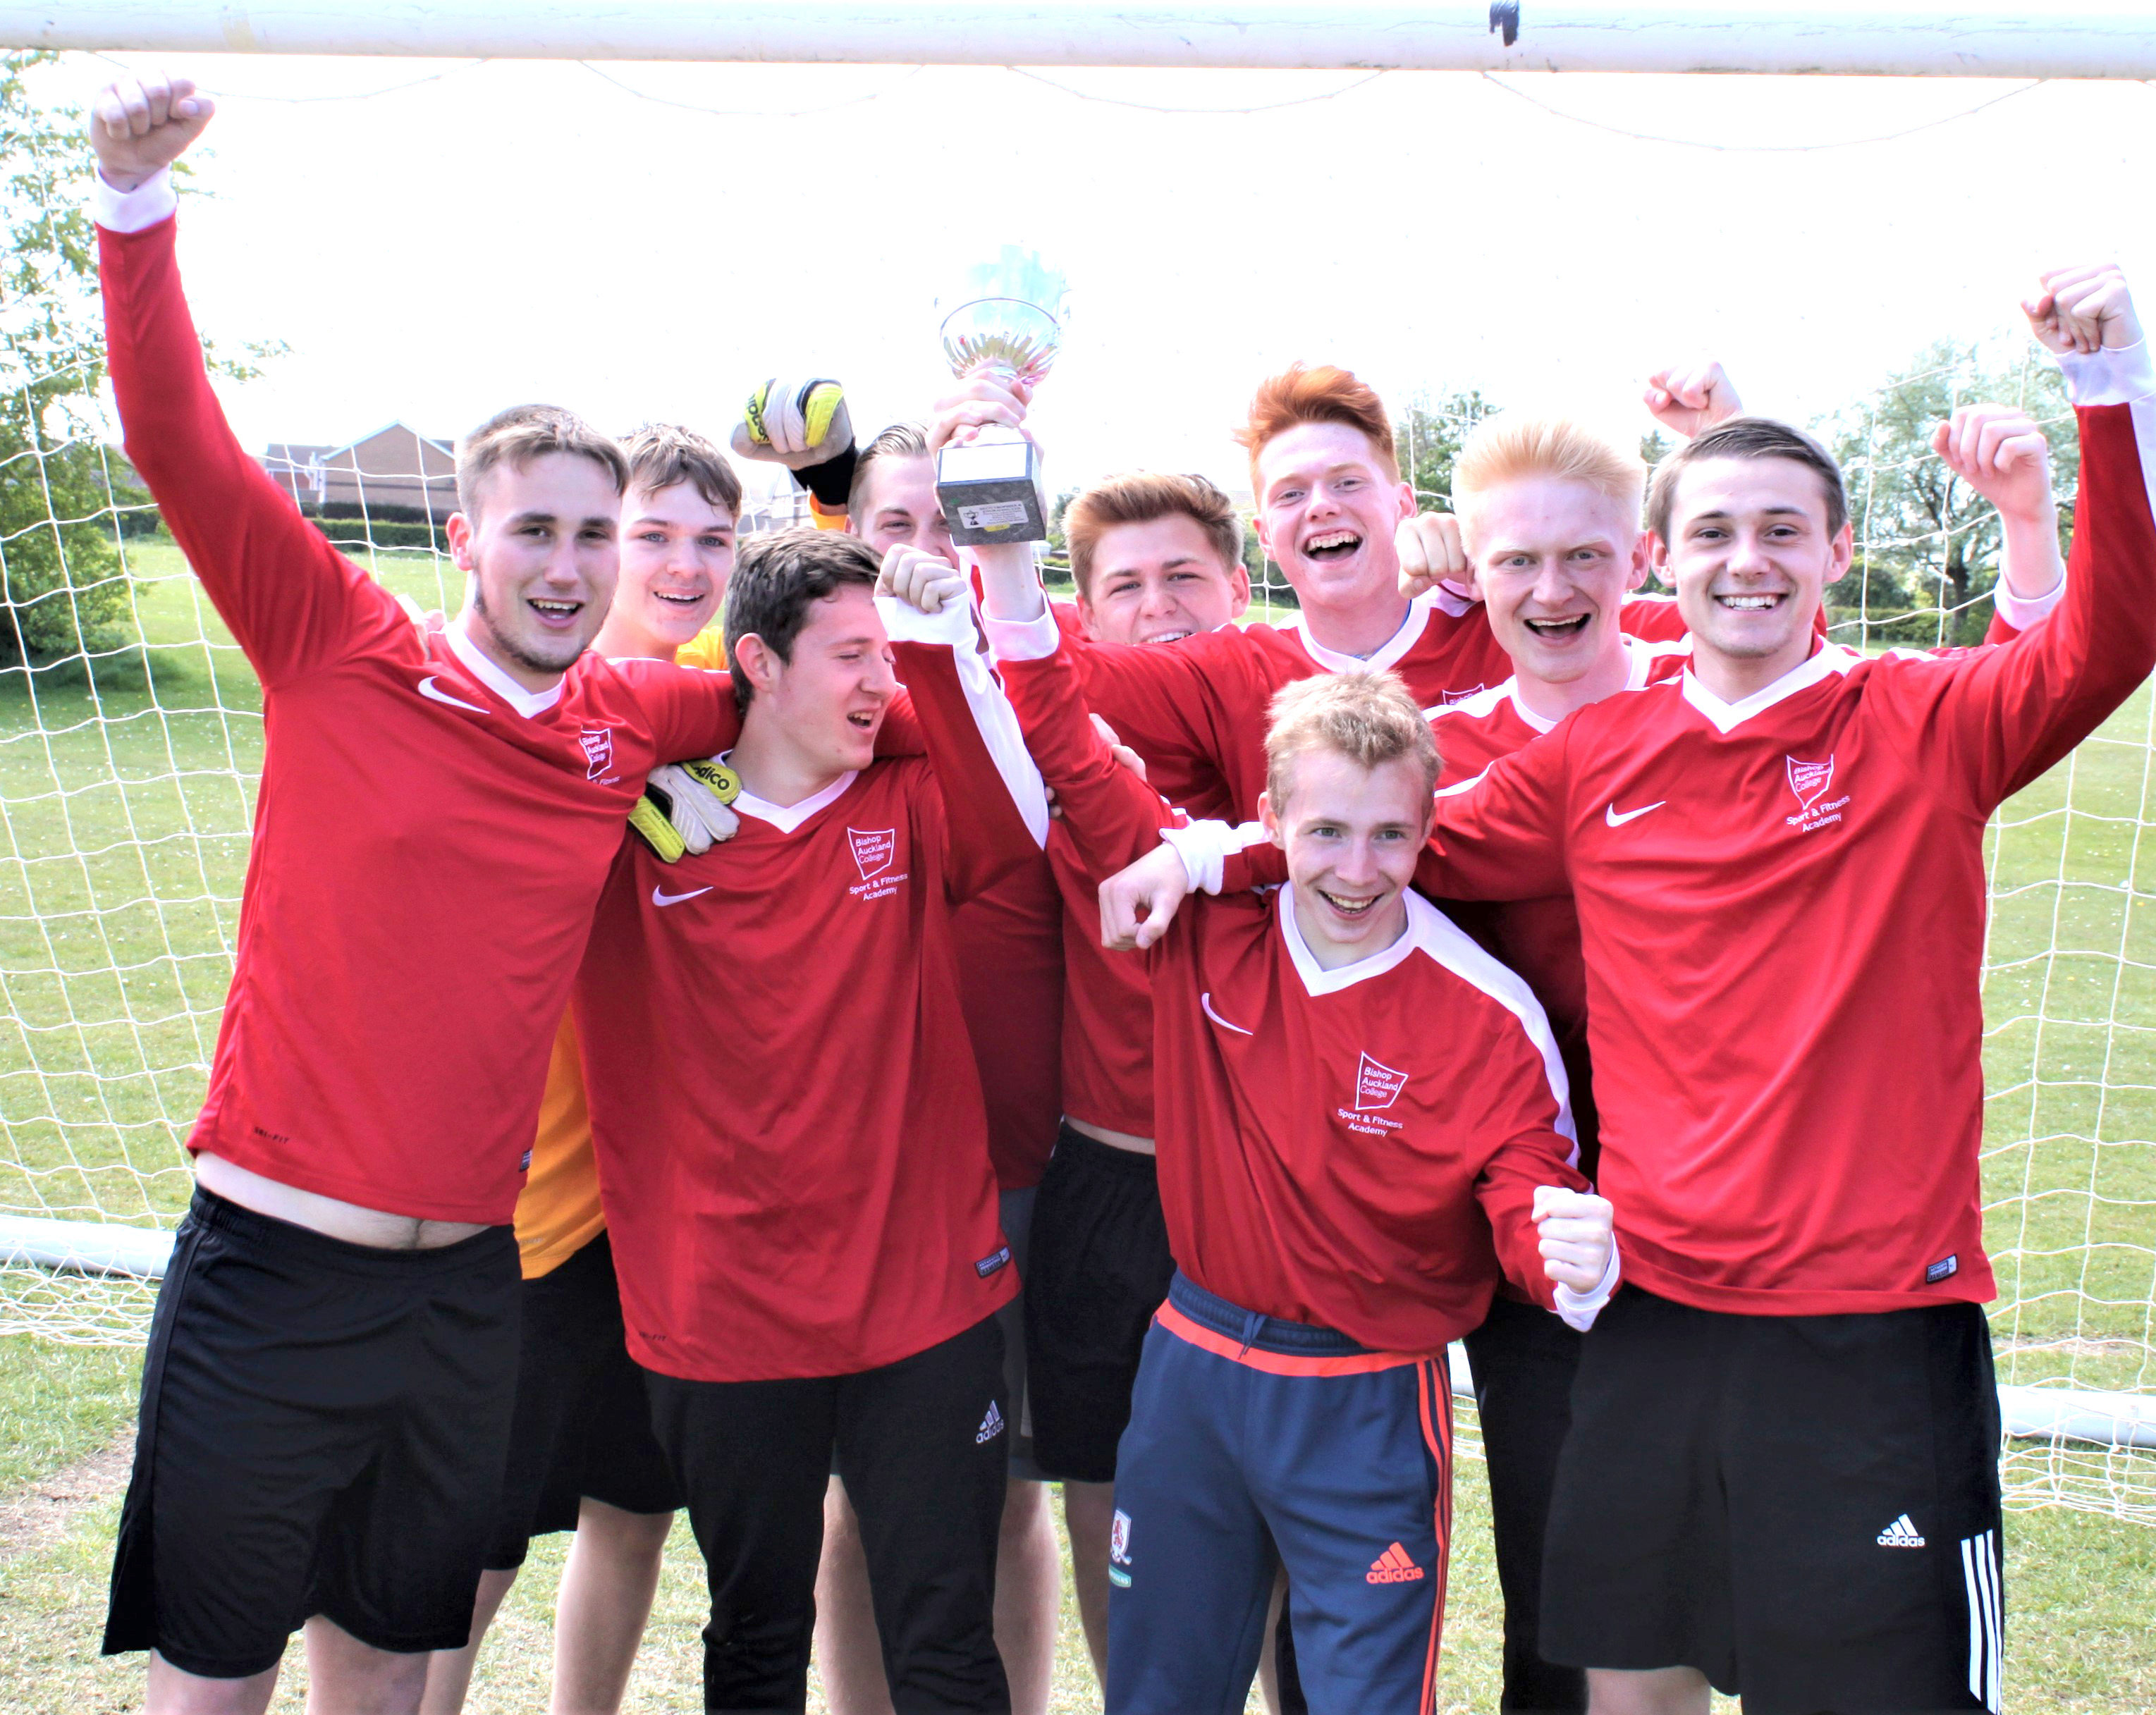 Bishop Auckland College Win N.E. League Title